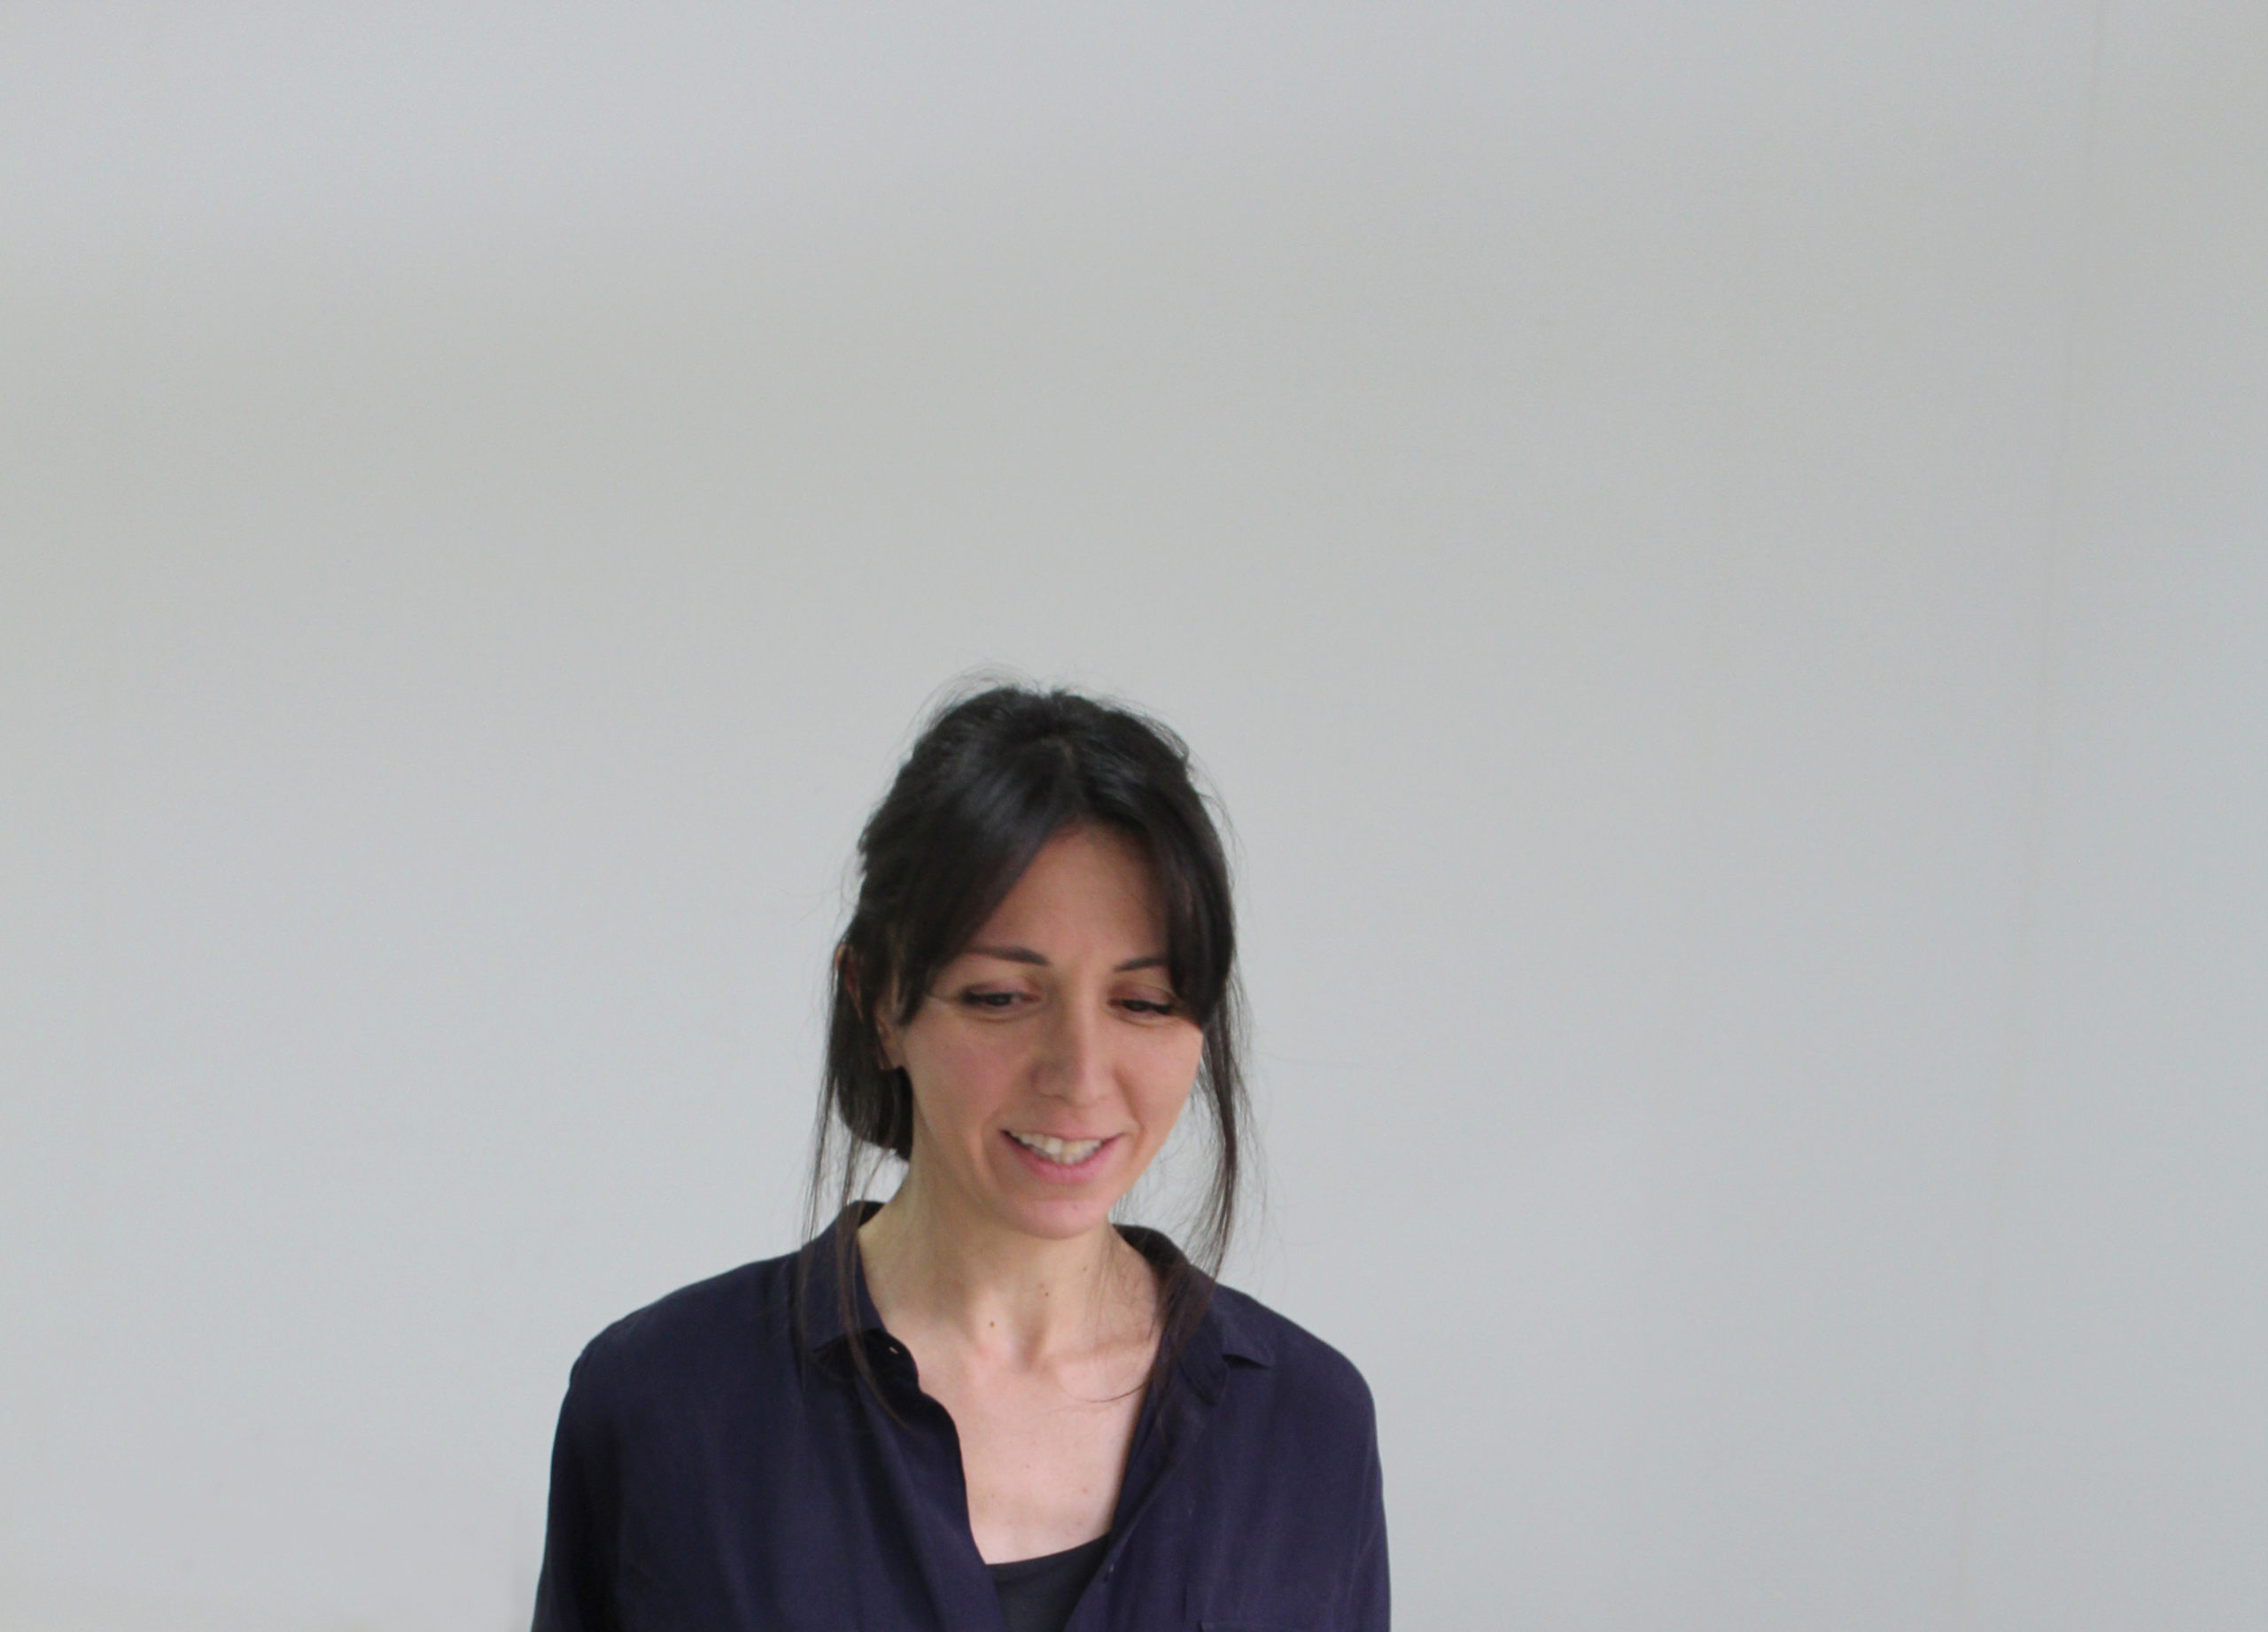 Portrait of Shirin Salehi: she is looking down with a big blank space behind her